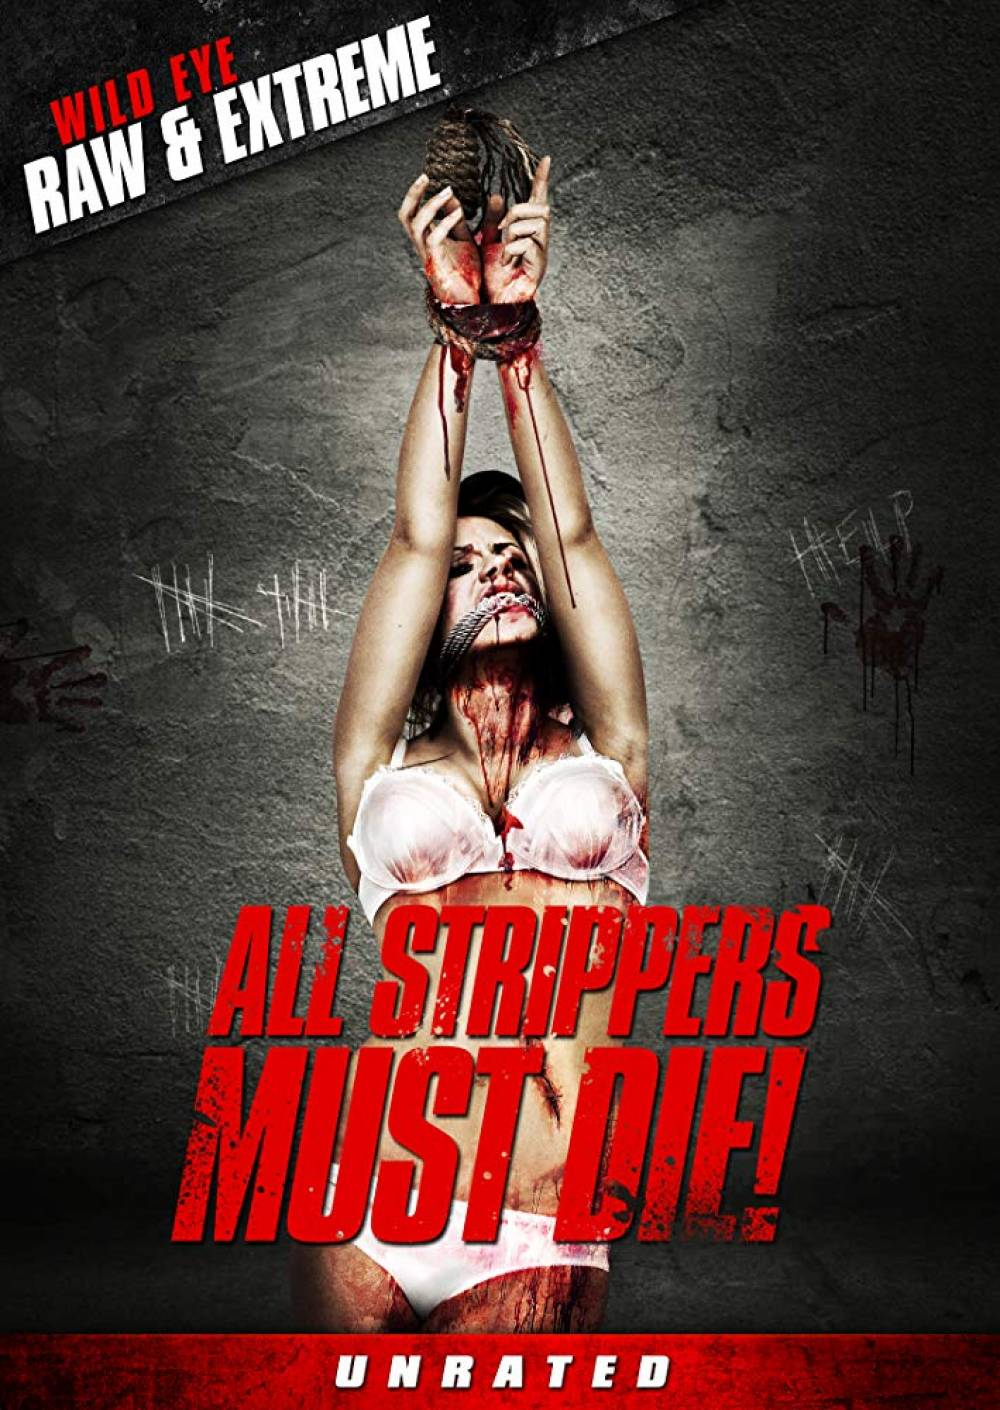 All Strippers Must Die